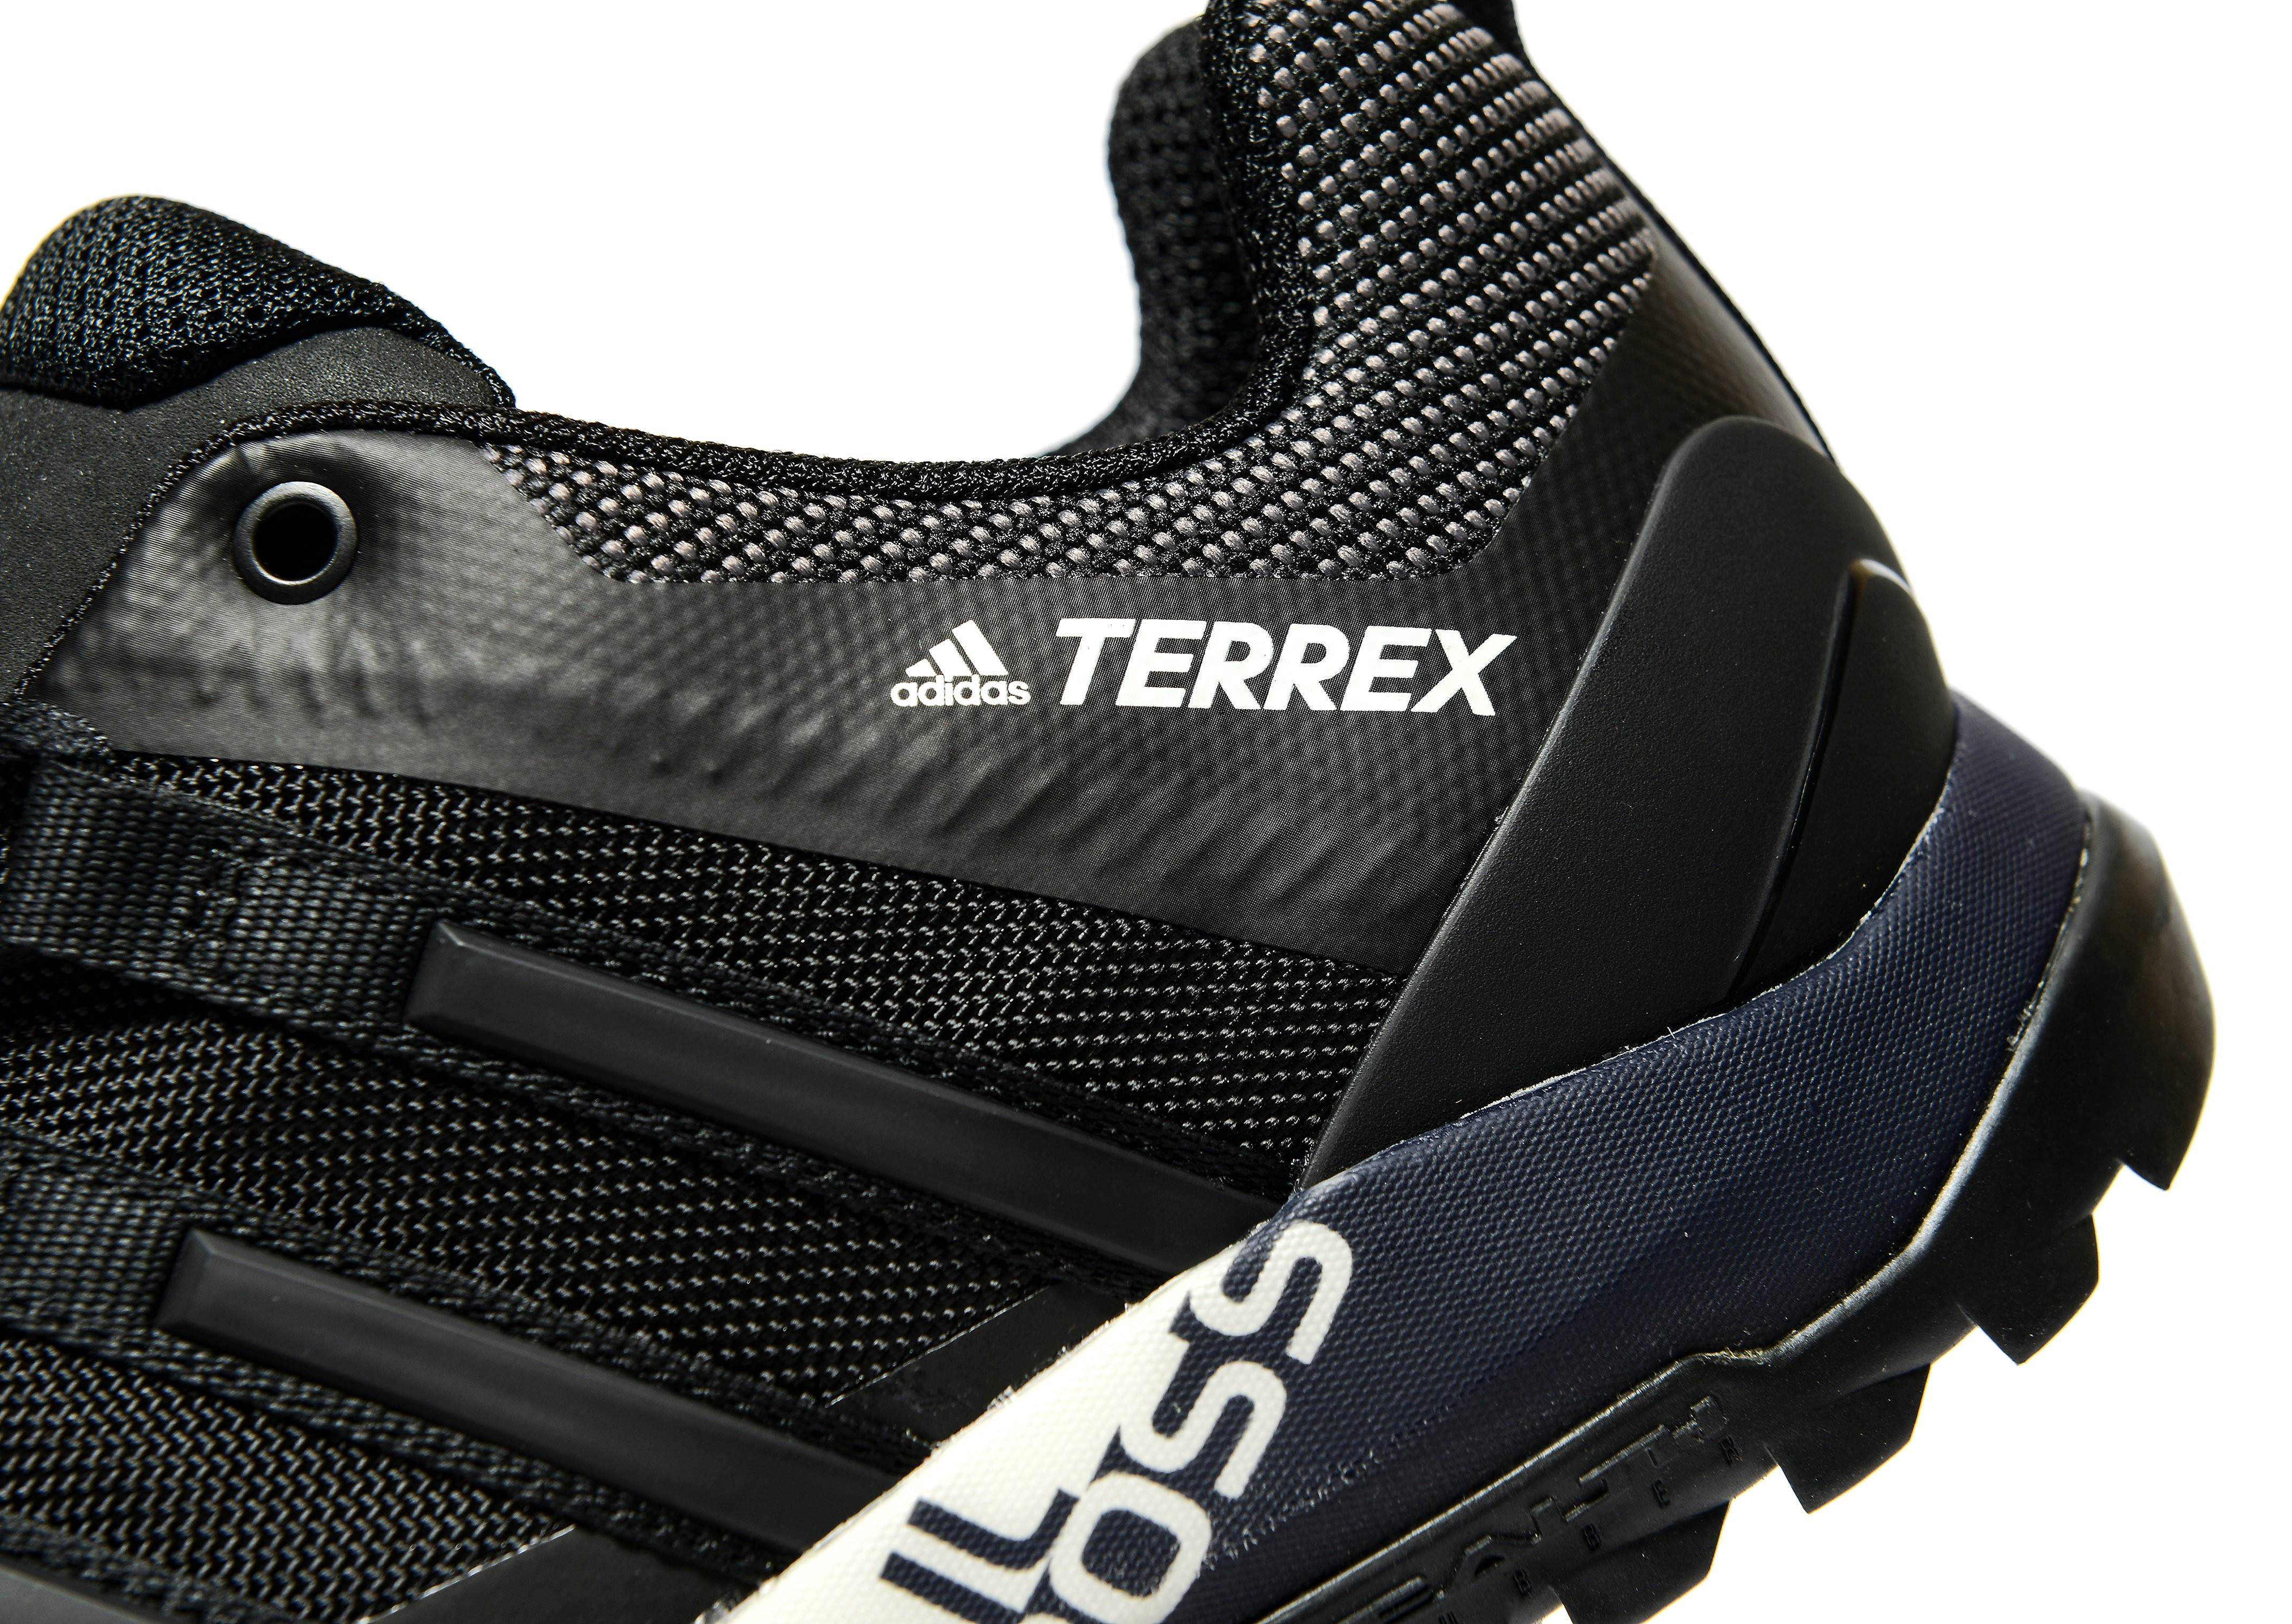 adidas Terrex Trail Cross SL